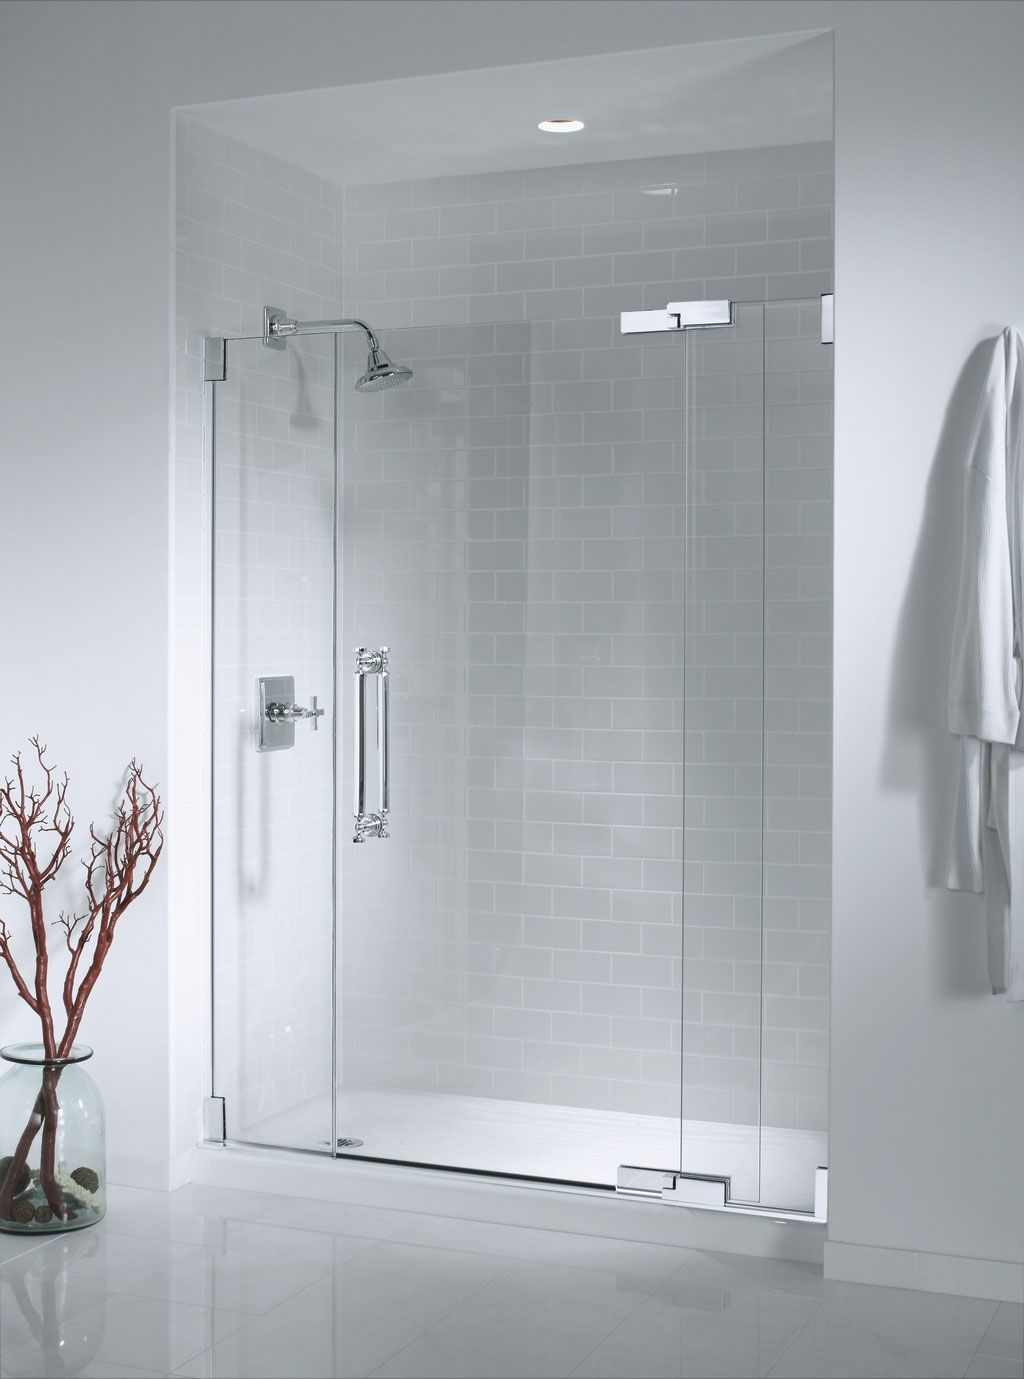 Bathroom Interior, Glass Shower Doors – The Affection of Modernity ...